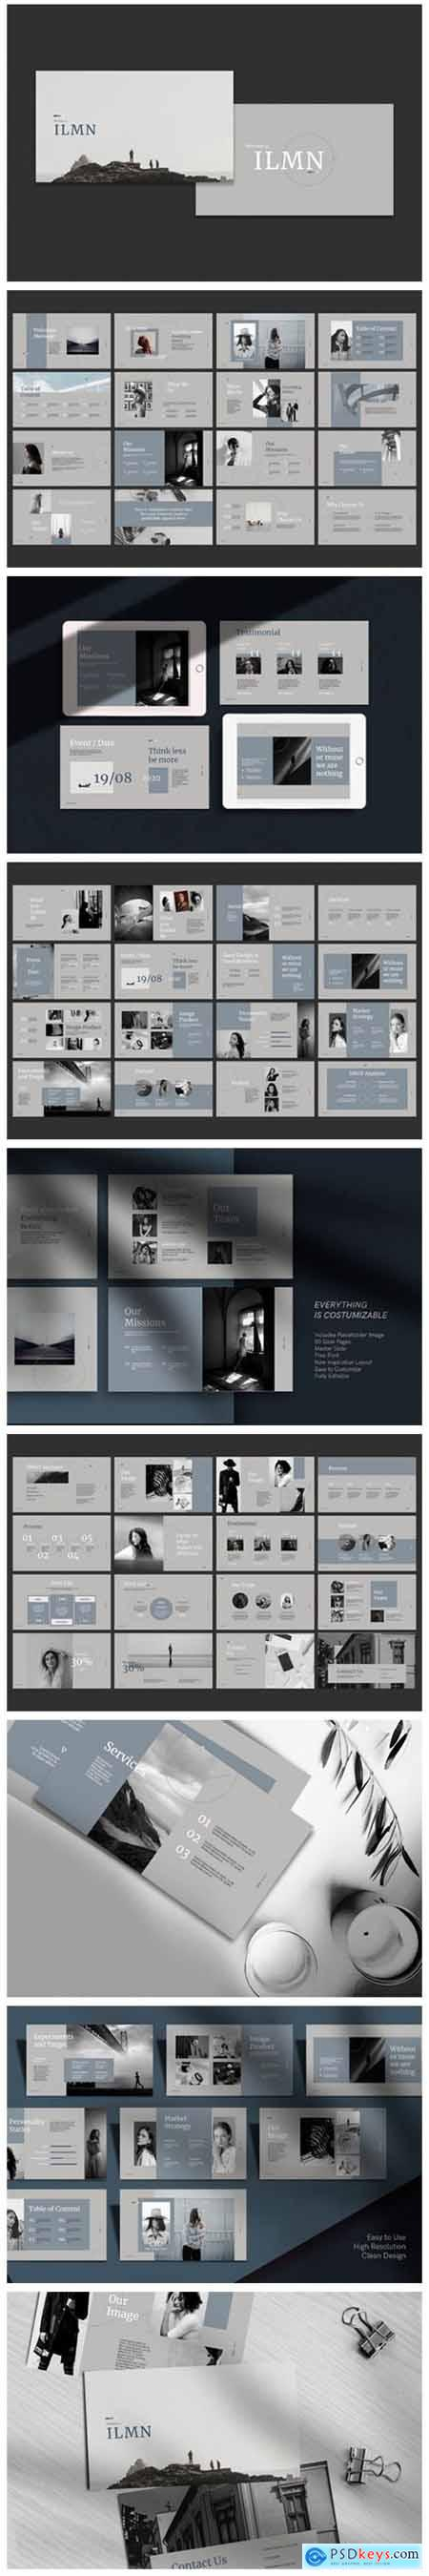 Corporate Powerpoint Templates 2321347